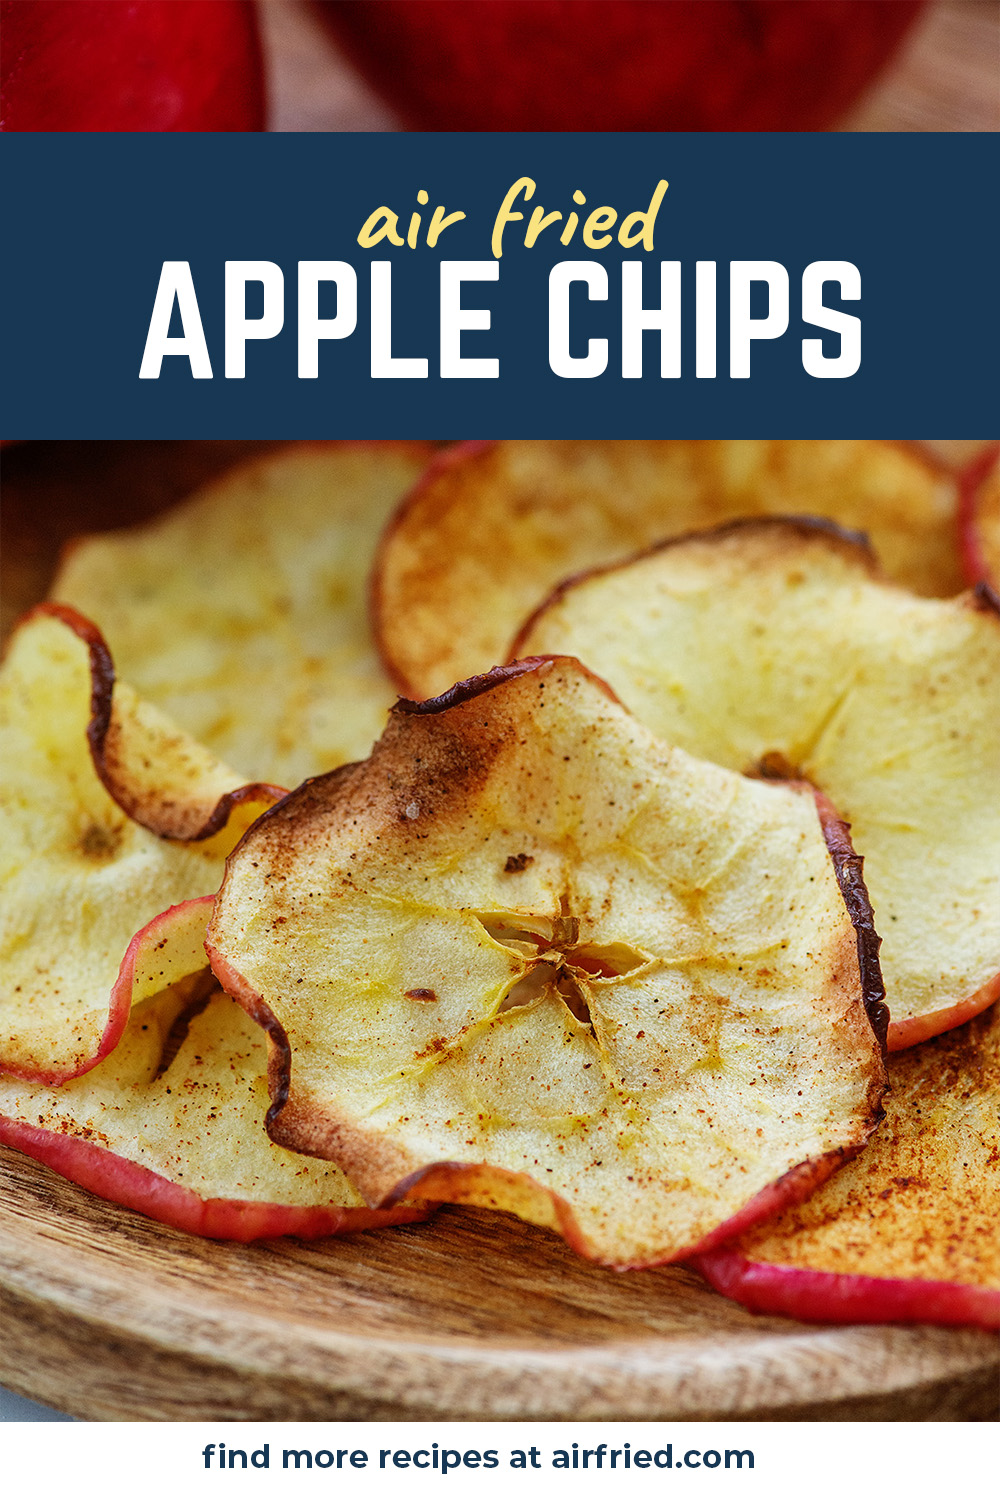 Our apple chips are coated with cinnamon and dehydrated in the air fryer!